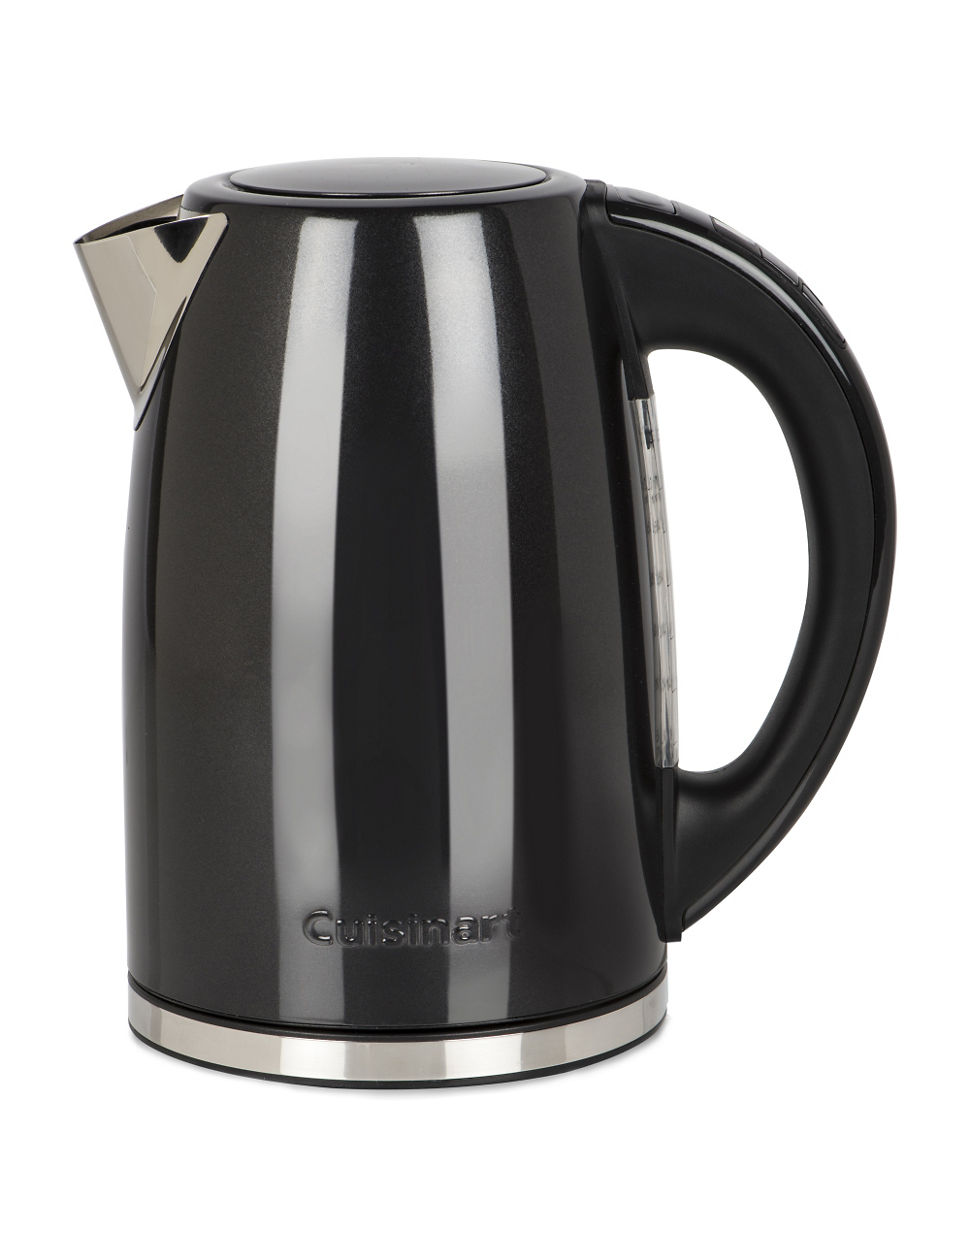 kettles  coffee  tea  kitchen  home  hudson's bay - noir multitemp kettle